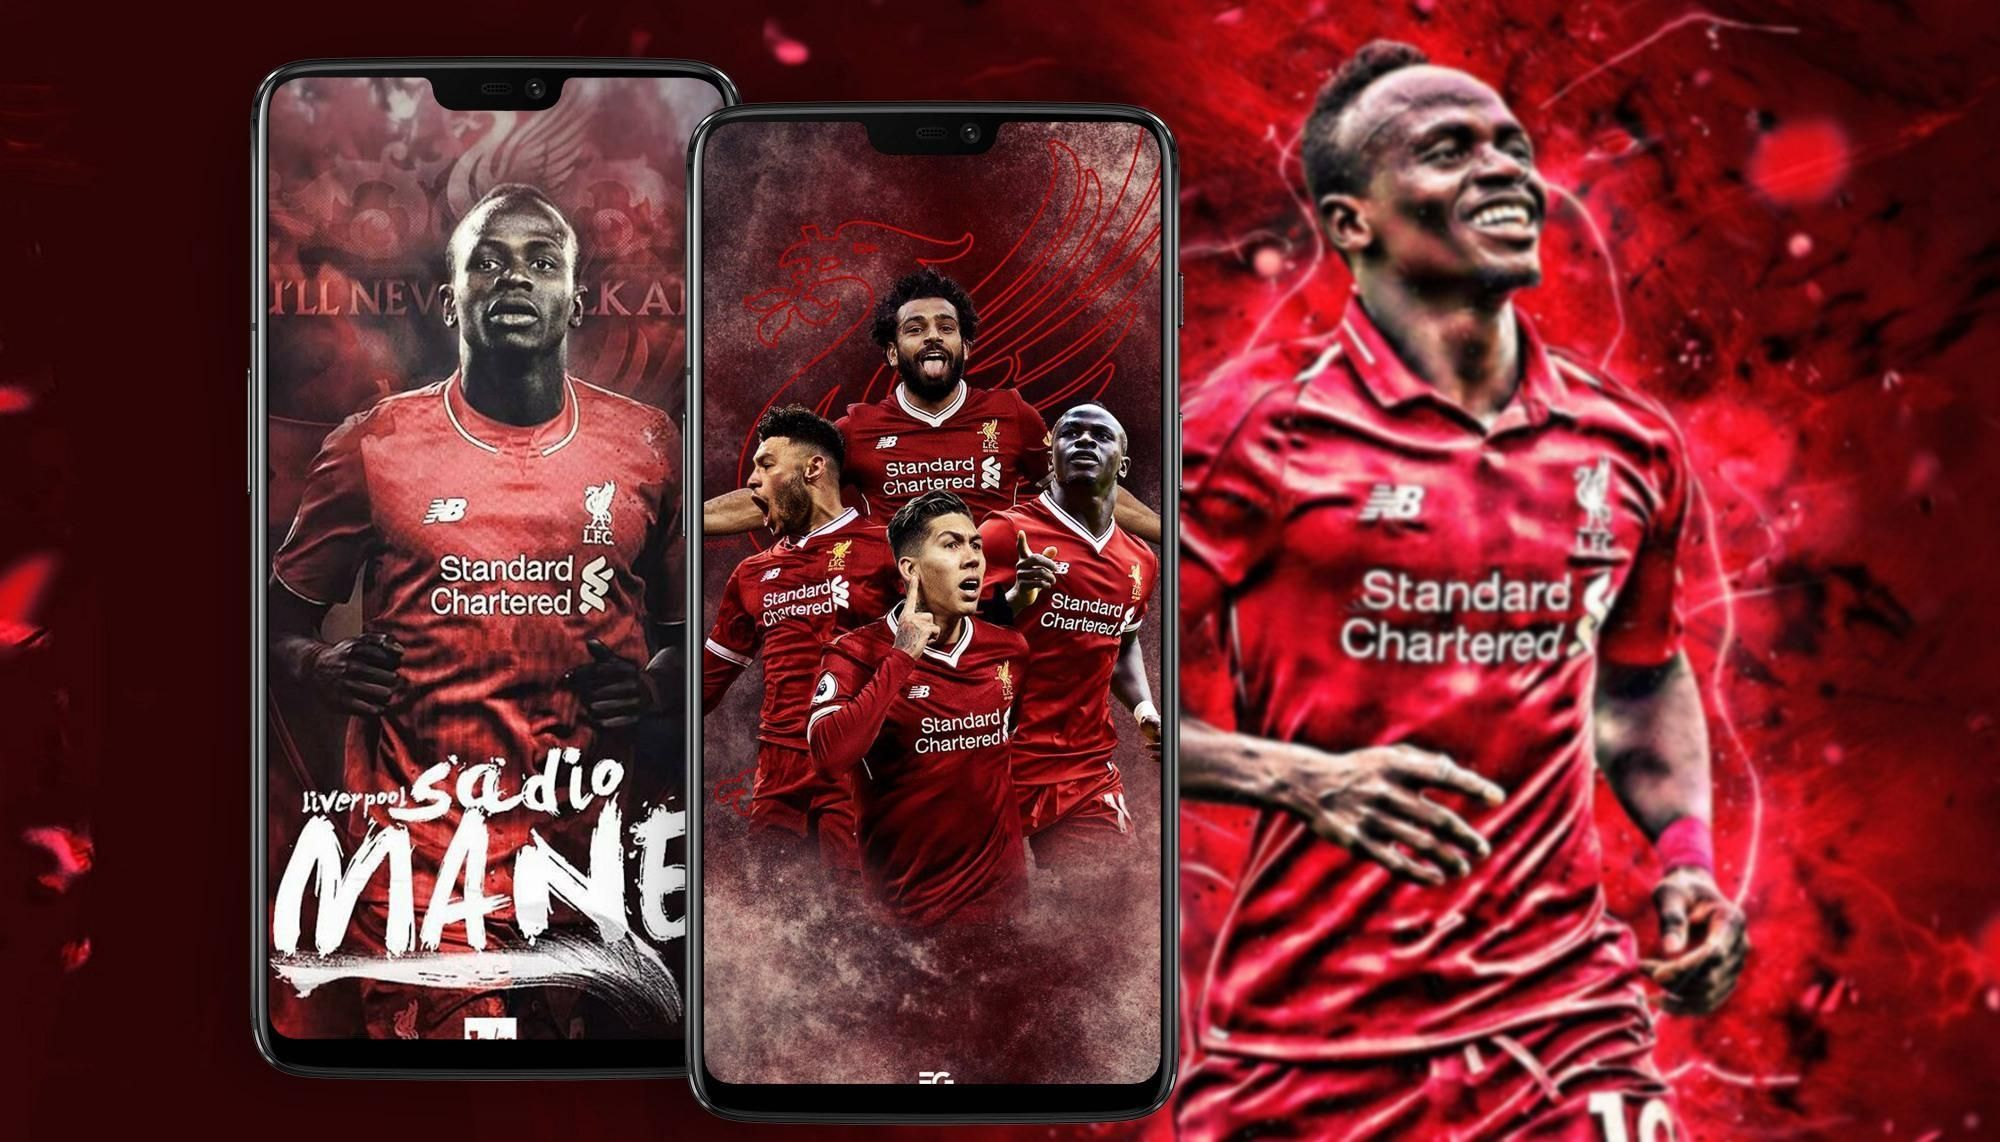 Liverpool Sadio Mane Wallpaper Hd Football In 2020 Liverpool Wallpapers Sadio Mane Lfc Wallpaper